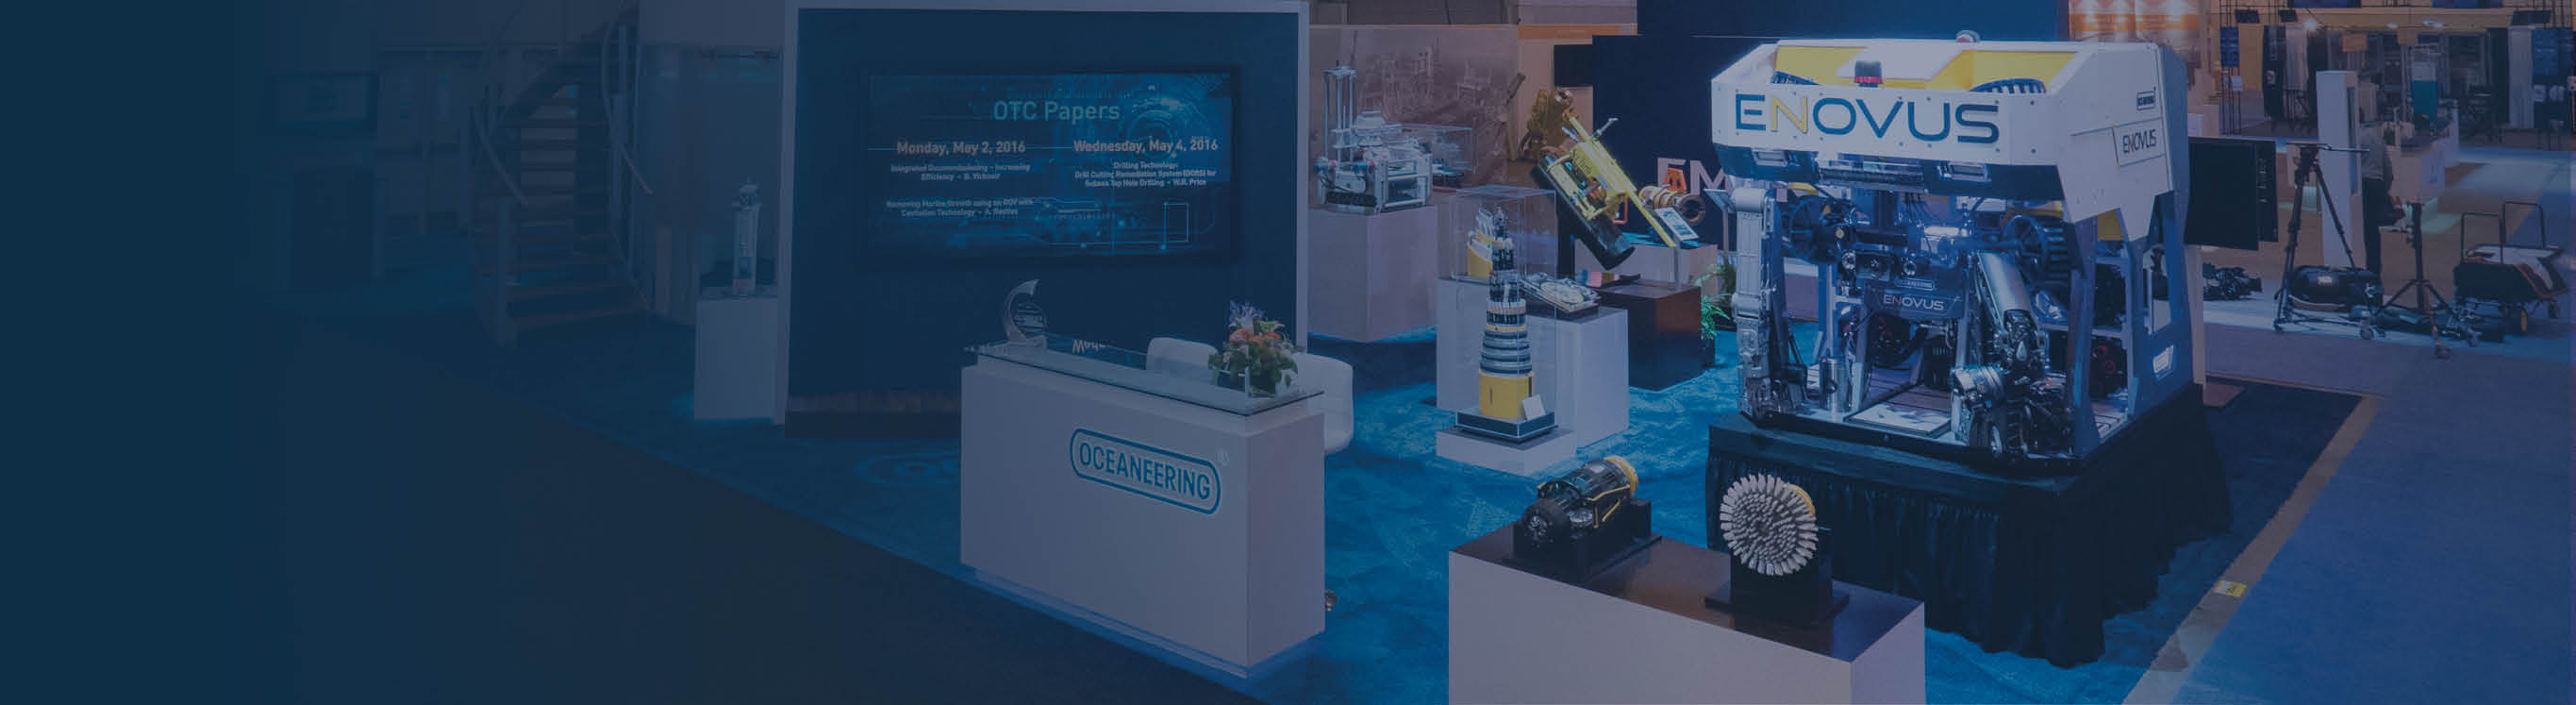 Oceaneering | Trade Shows